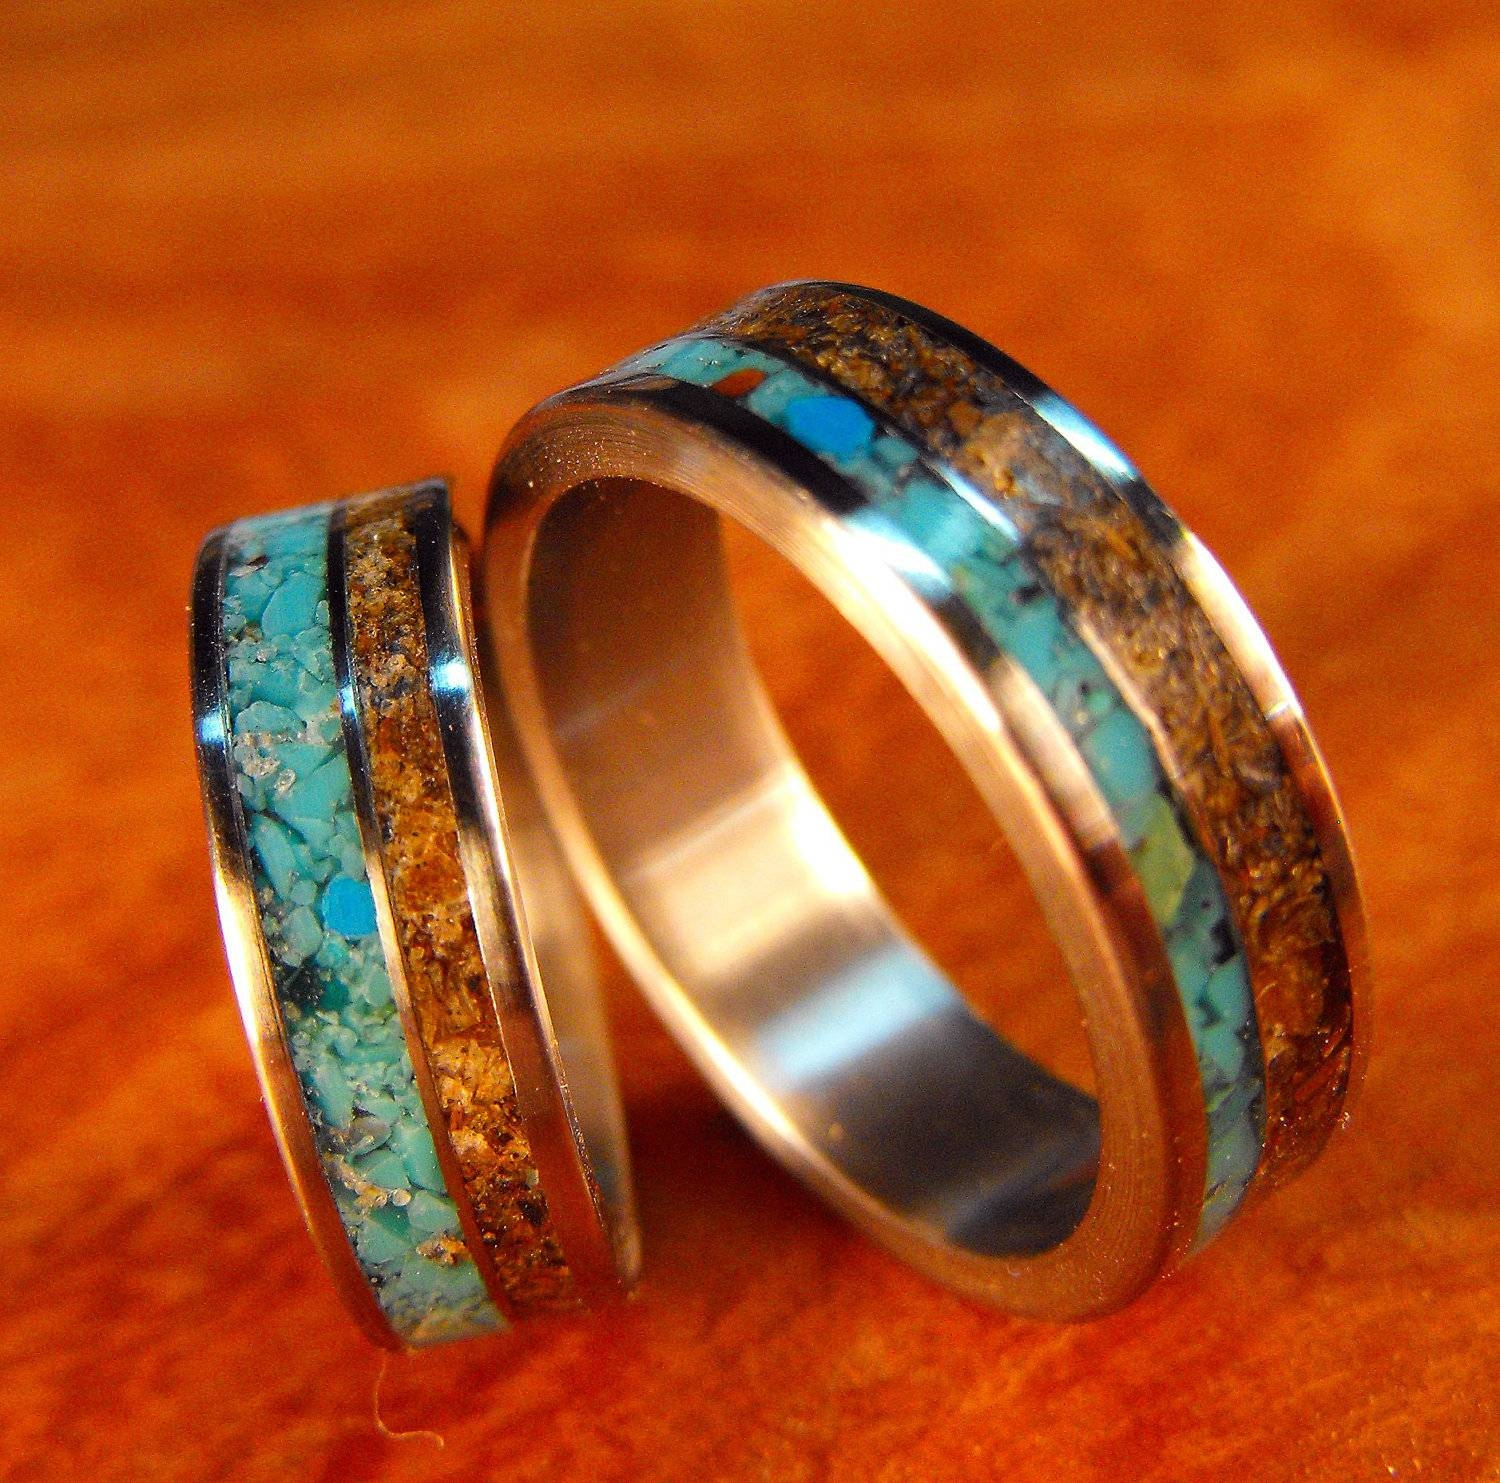 Titanium Rings, Wedding Rings, Turquoise Rings, Tigers Eye Rings Pertaining To Titanium Wedding Bands Sets His Hers (View 12 of 15)